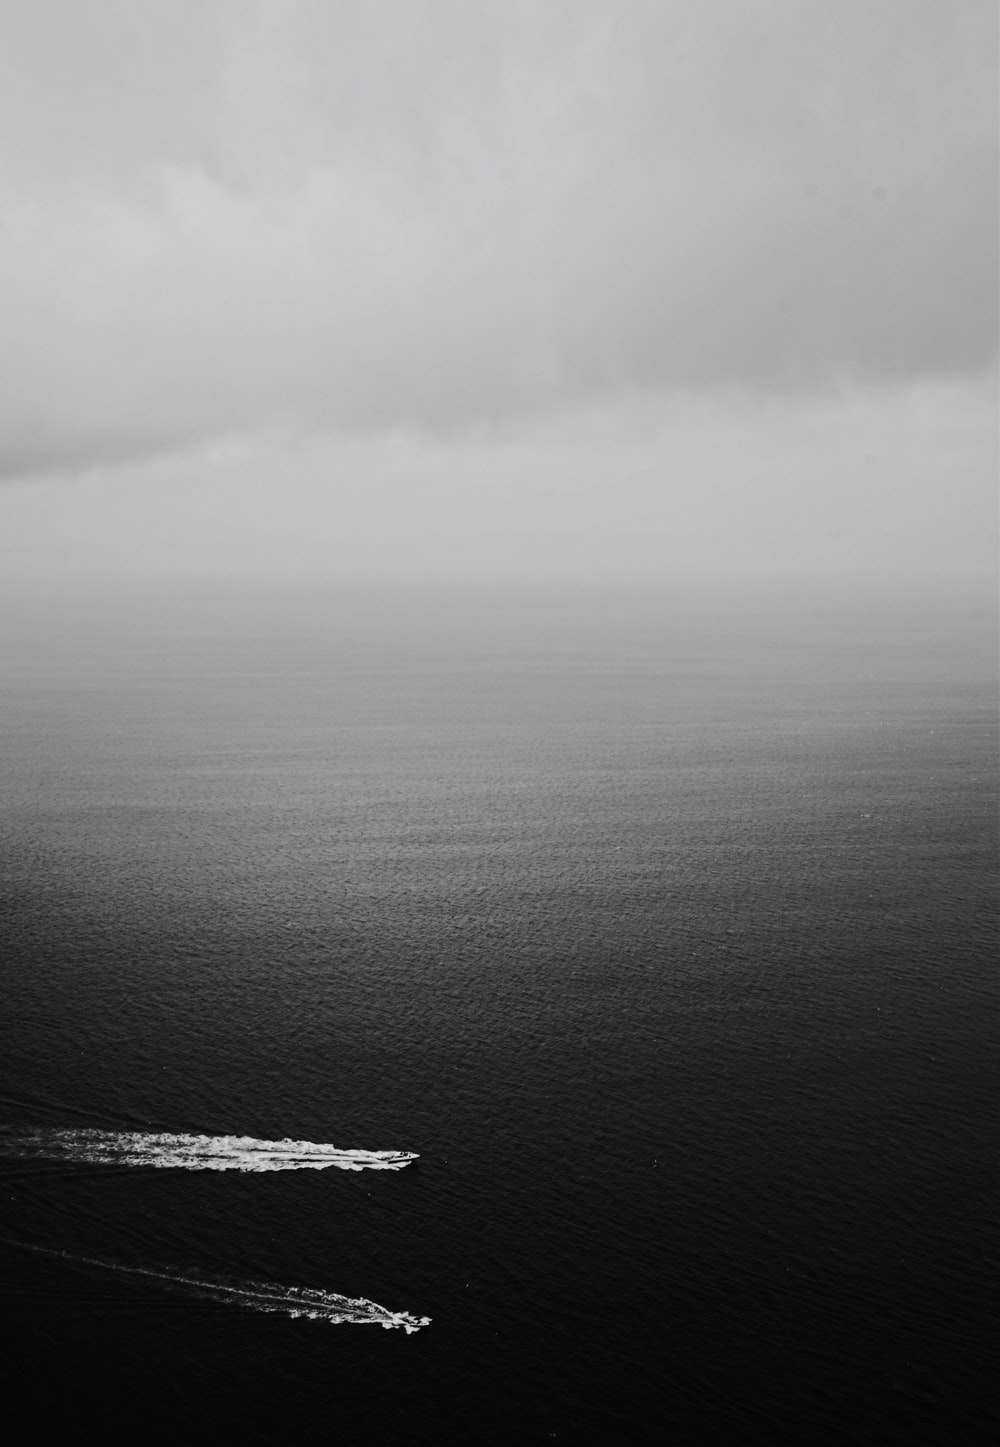 grayscale photography of two boats on a body of water